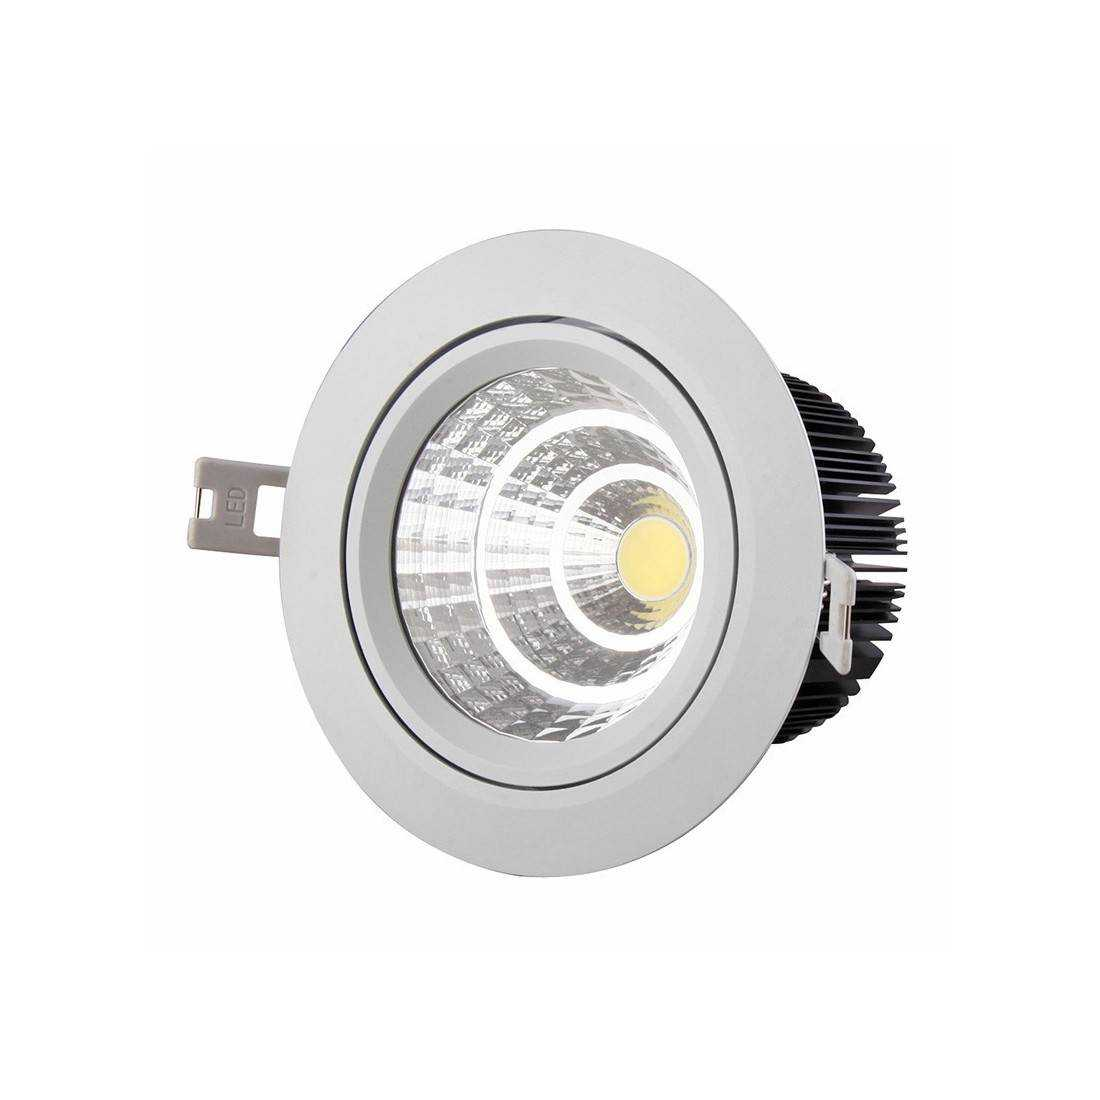 spot led blanc encastrable 7w 230v